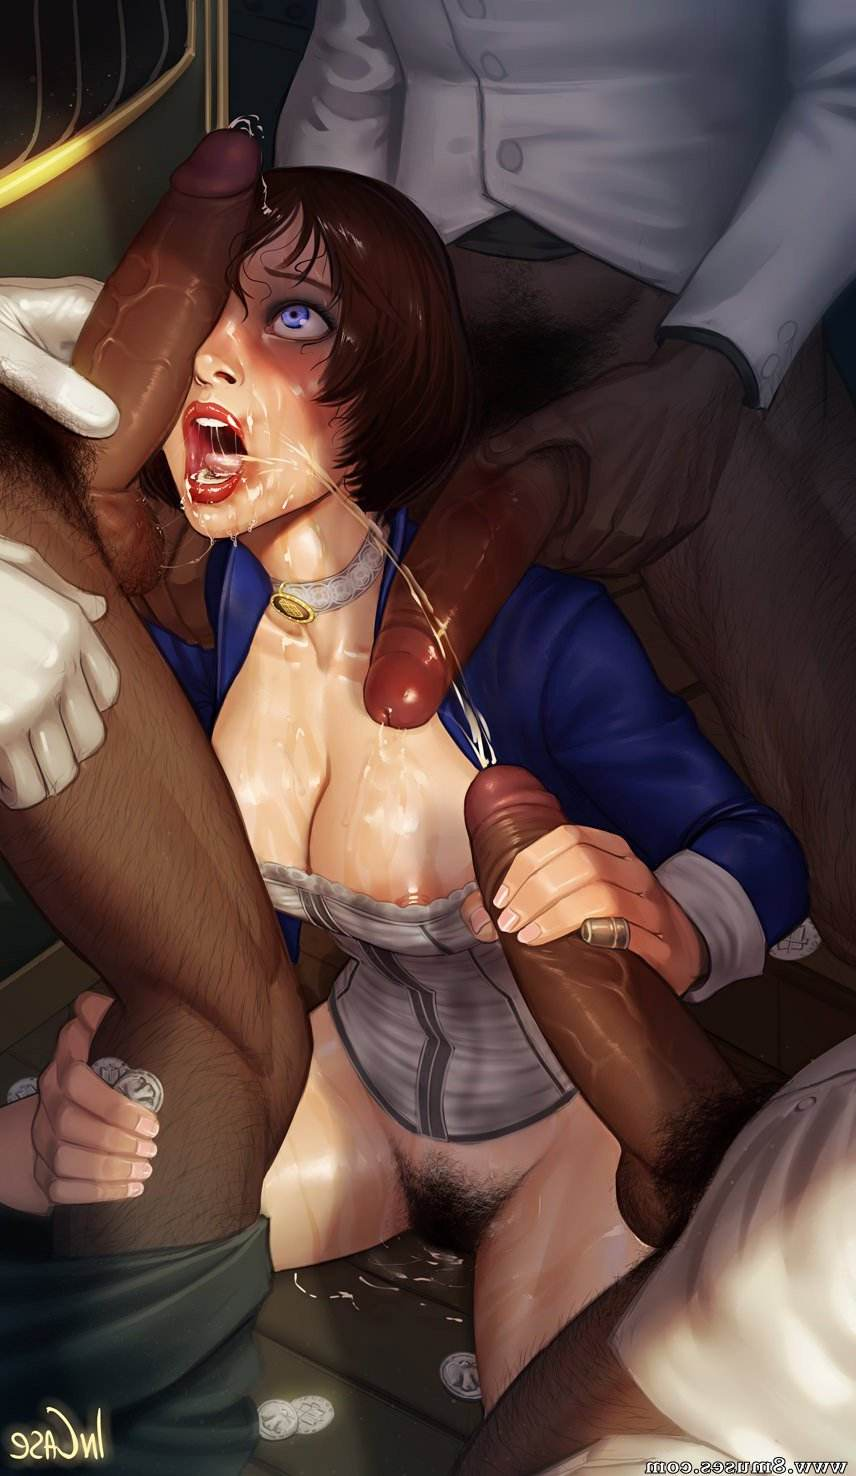 Incase-Comics/Artwork Artwork__8muses_-_Sex_and_Porn_Comics_282.jpg